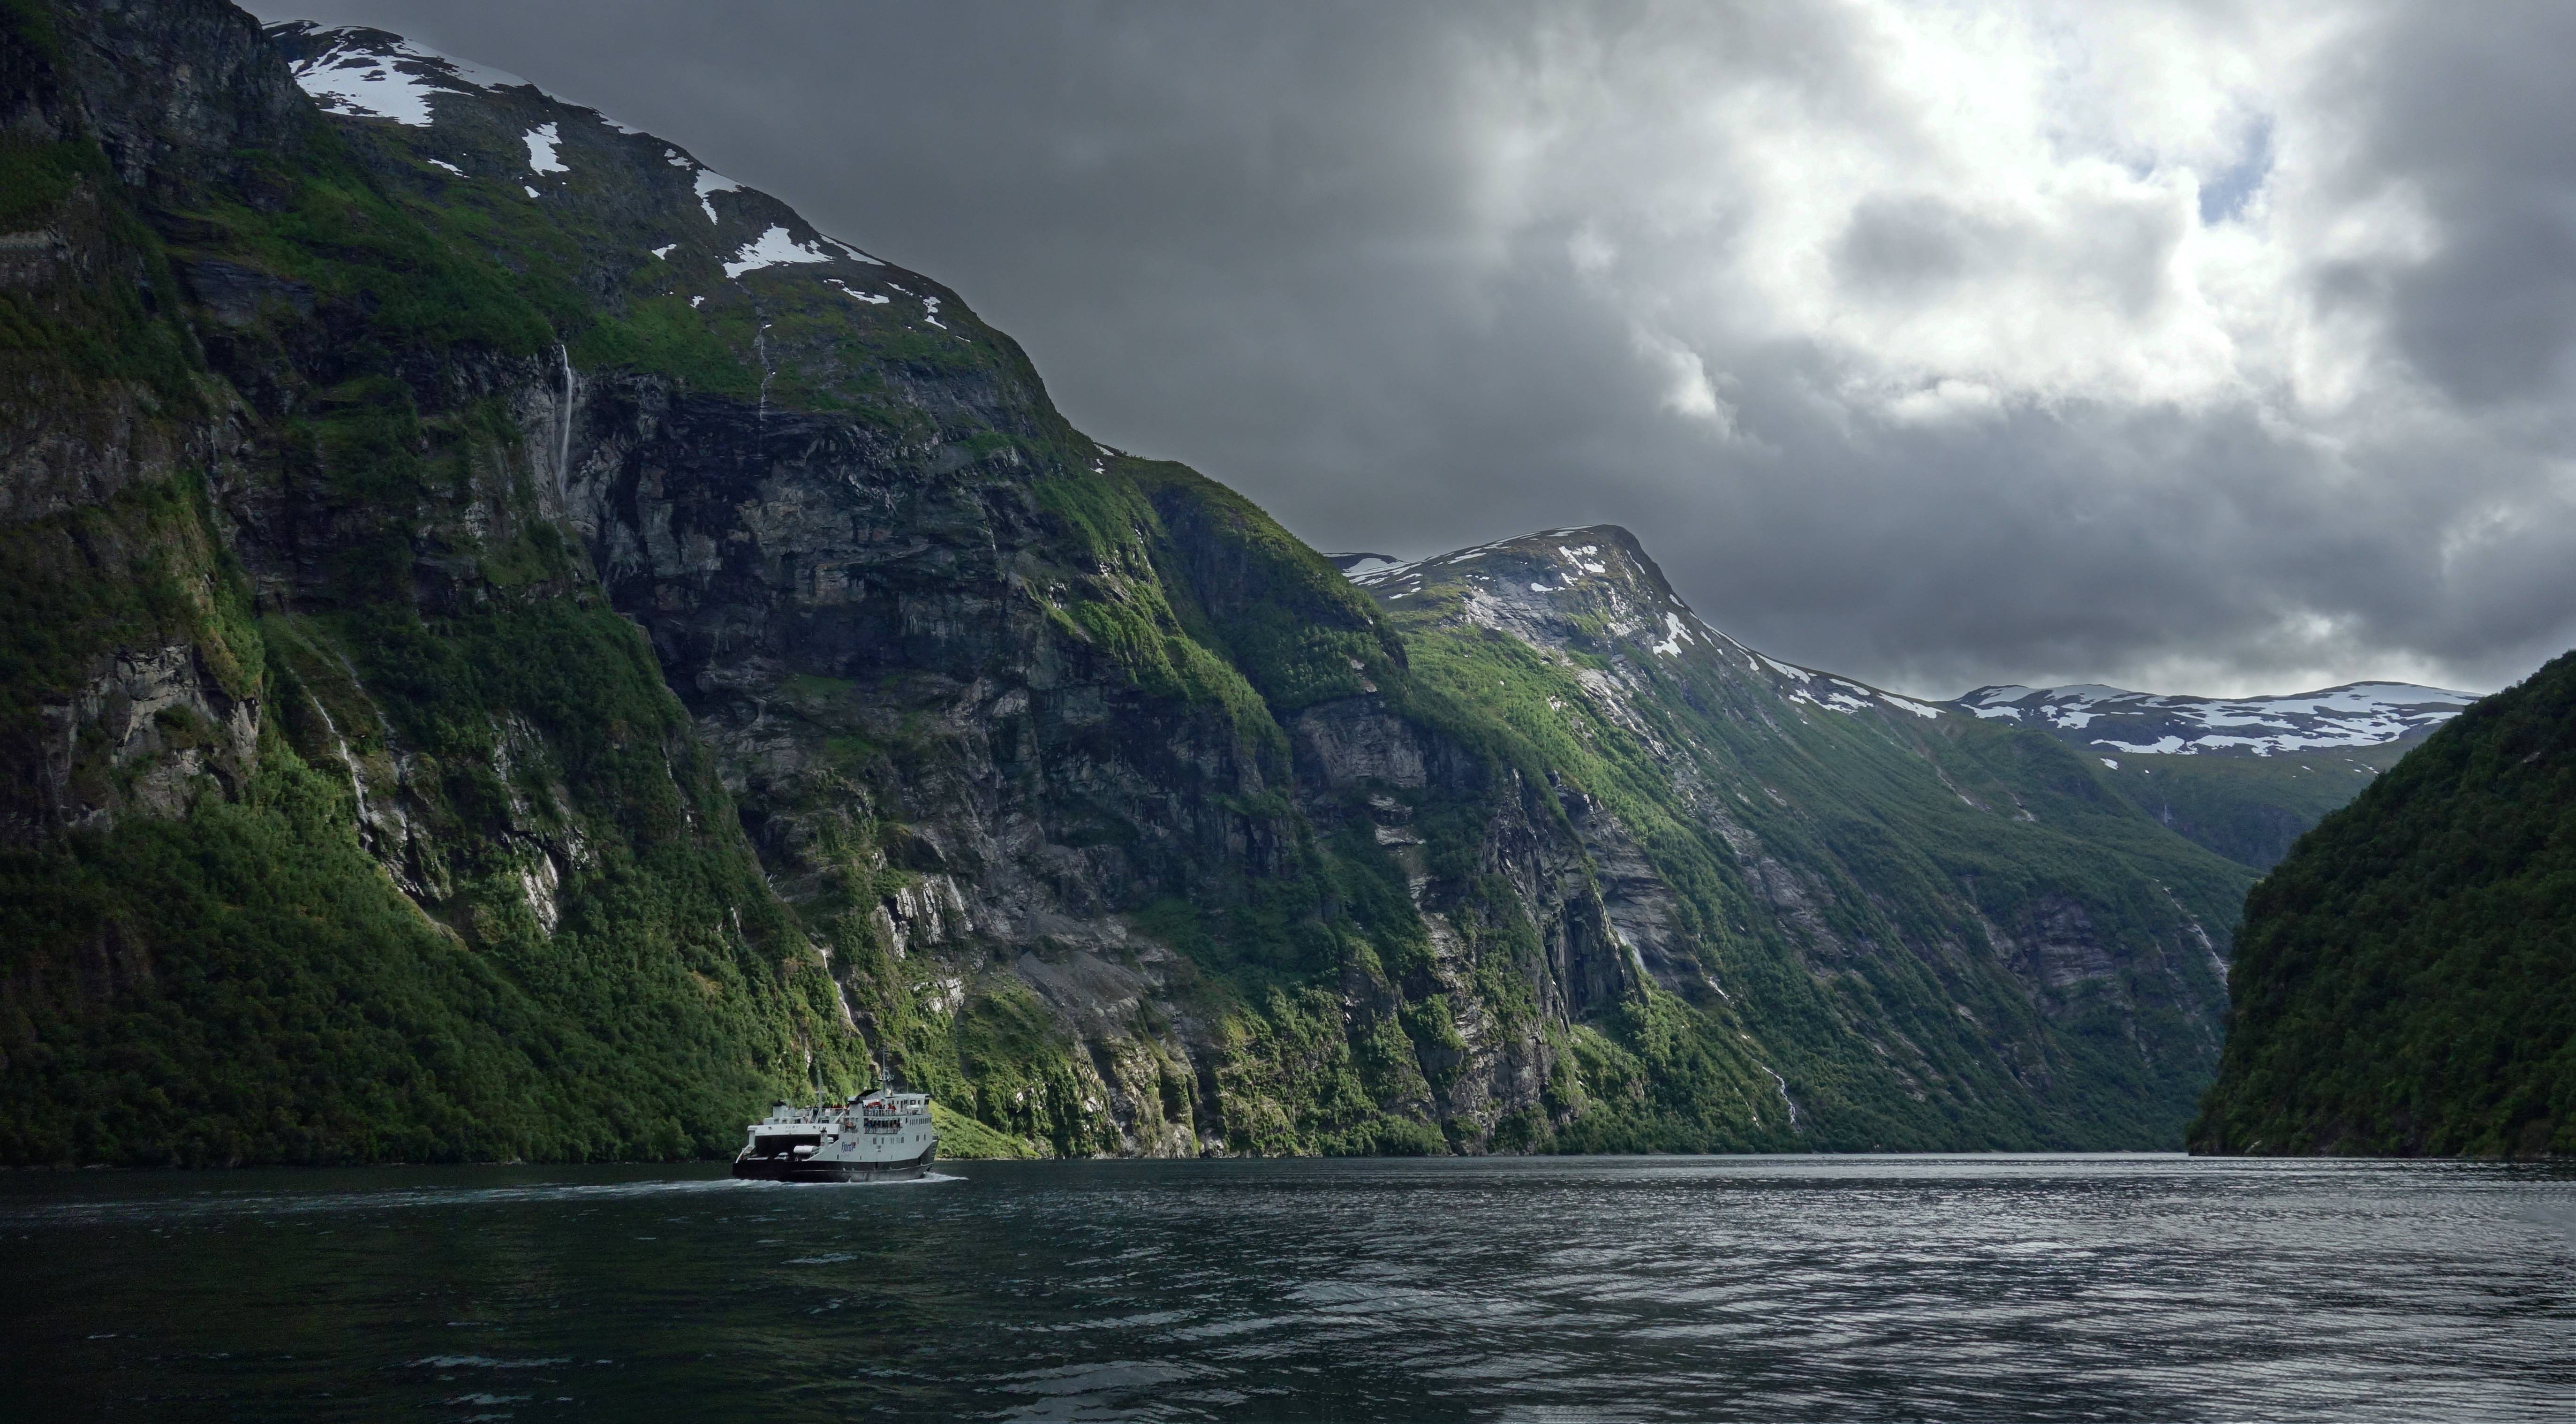 Norway Landscape Wallpapers Top Free Norway Landscape Backgrounds Wallpaperaccess